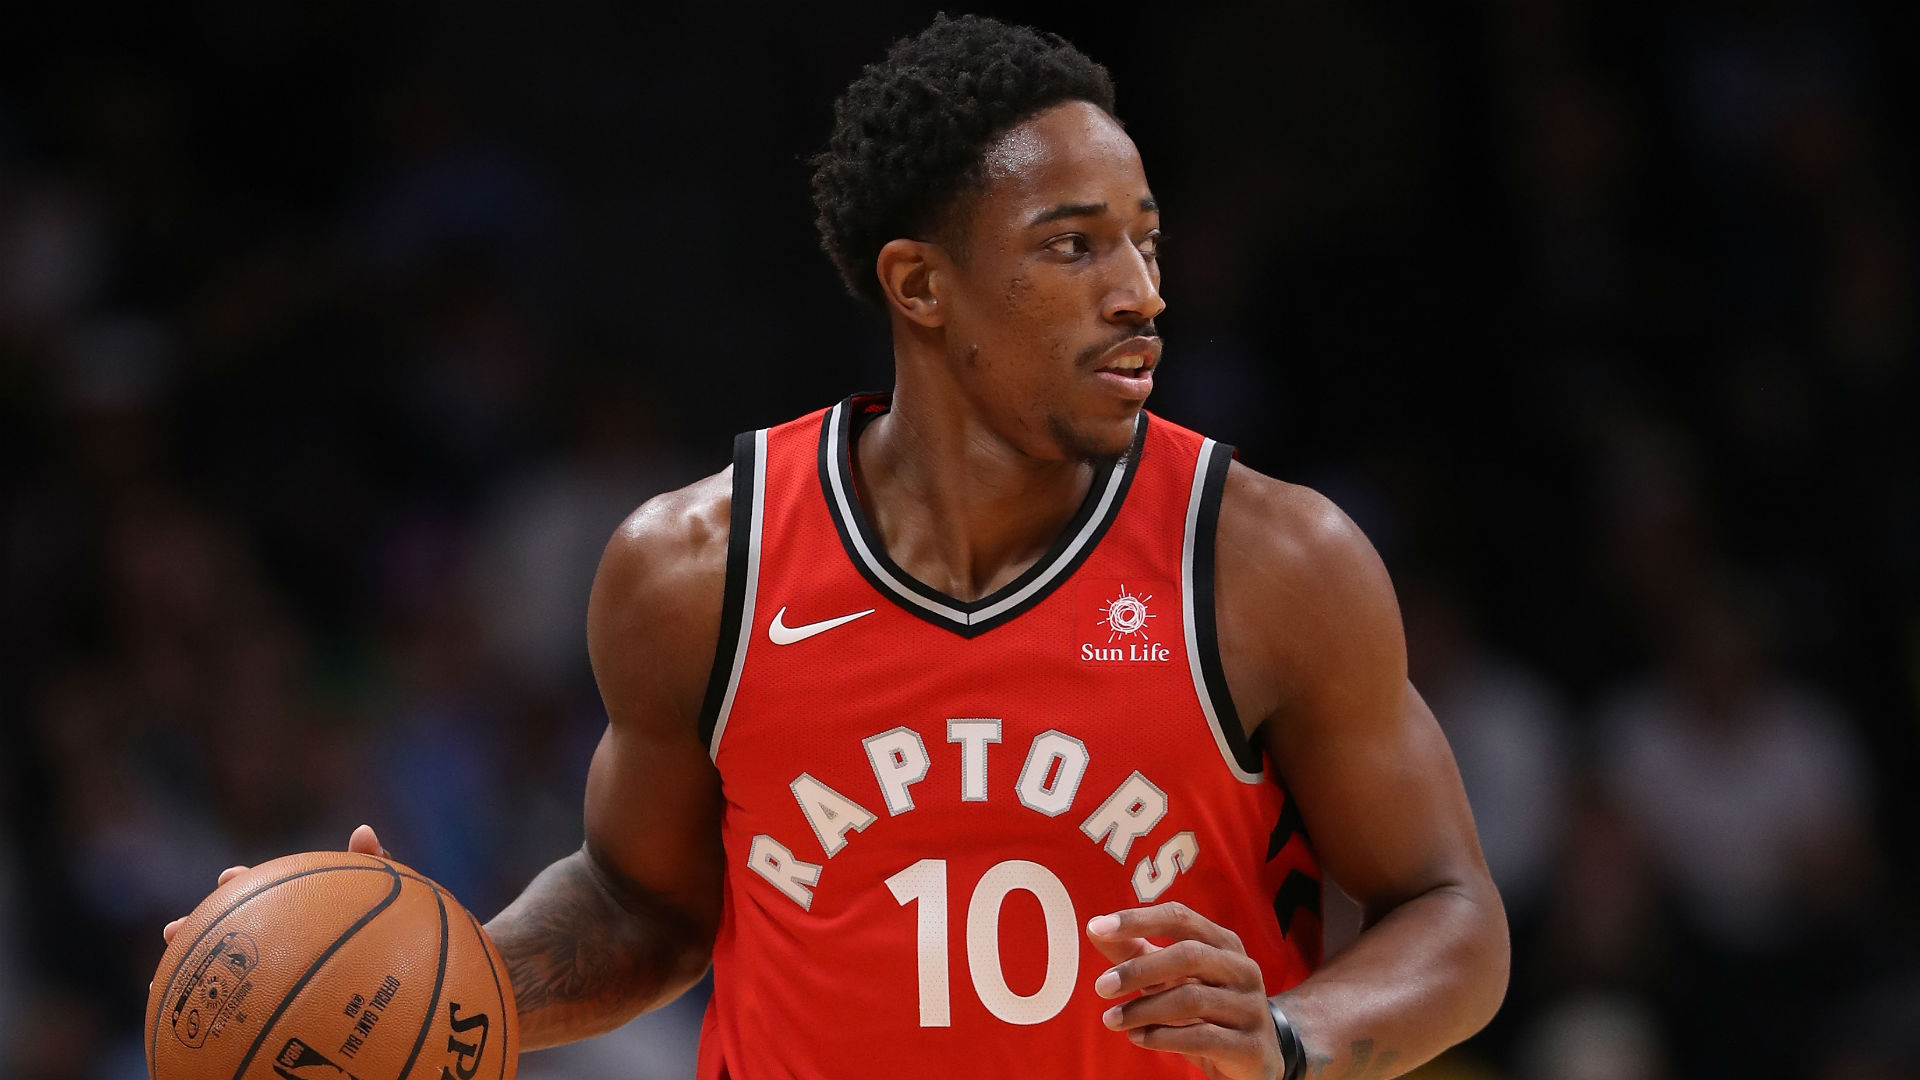 Raptors' bench carries stellar season into playoffs